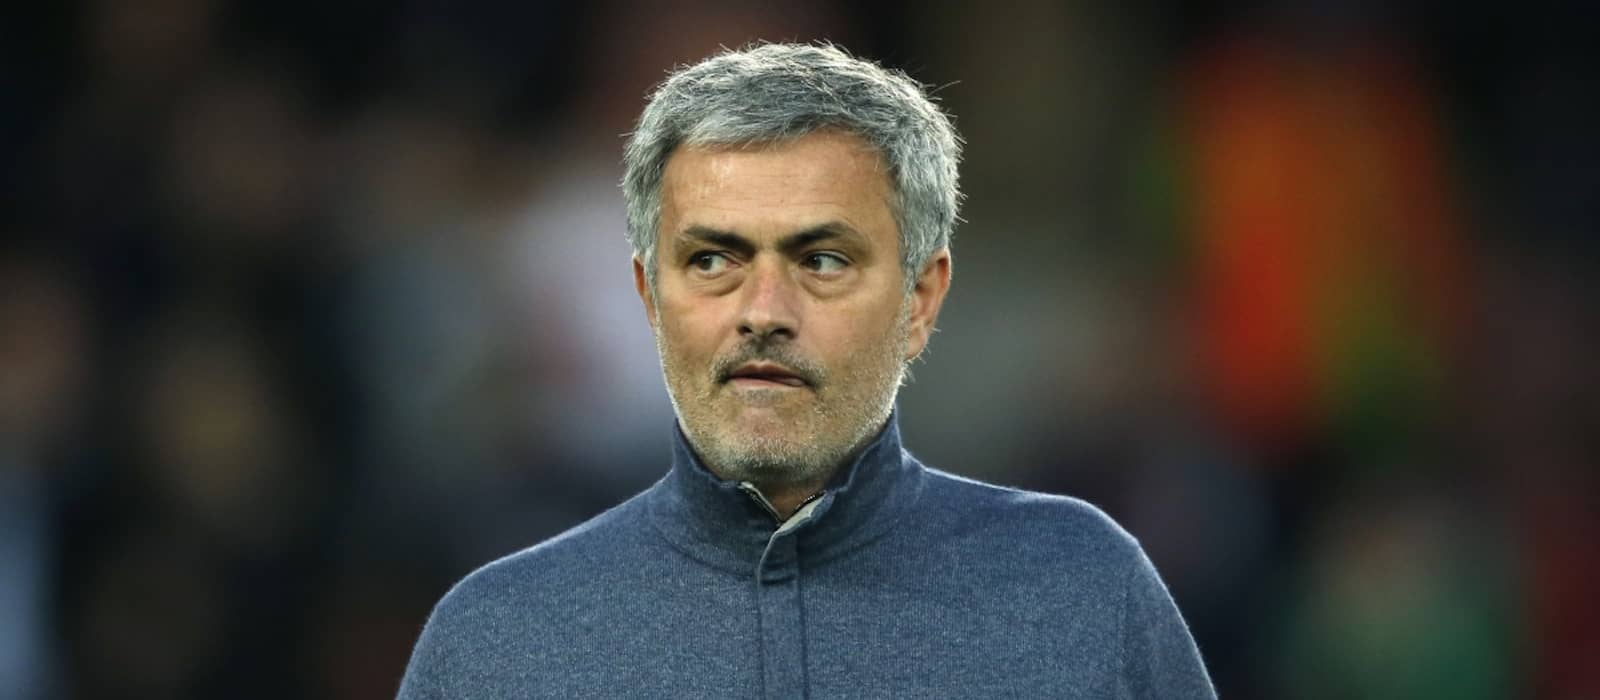 Jose Mourinho promises fans Manchester United will win under his leadership